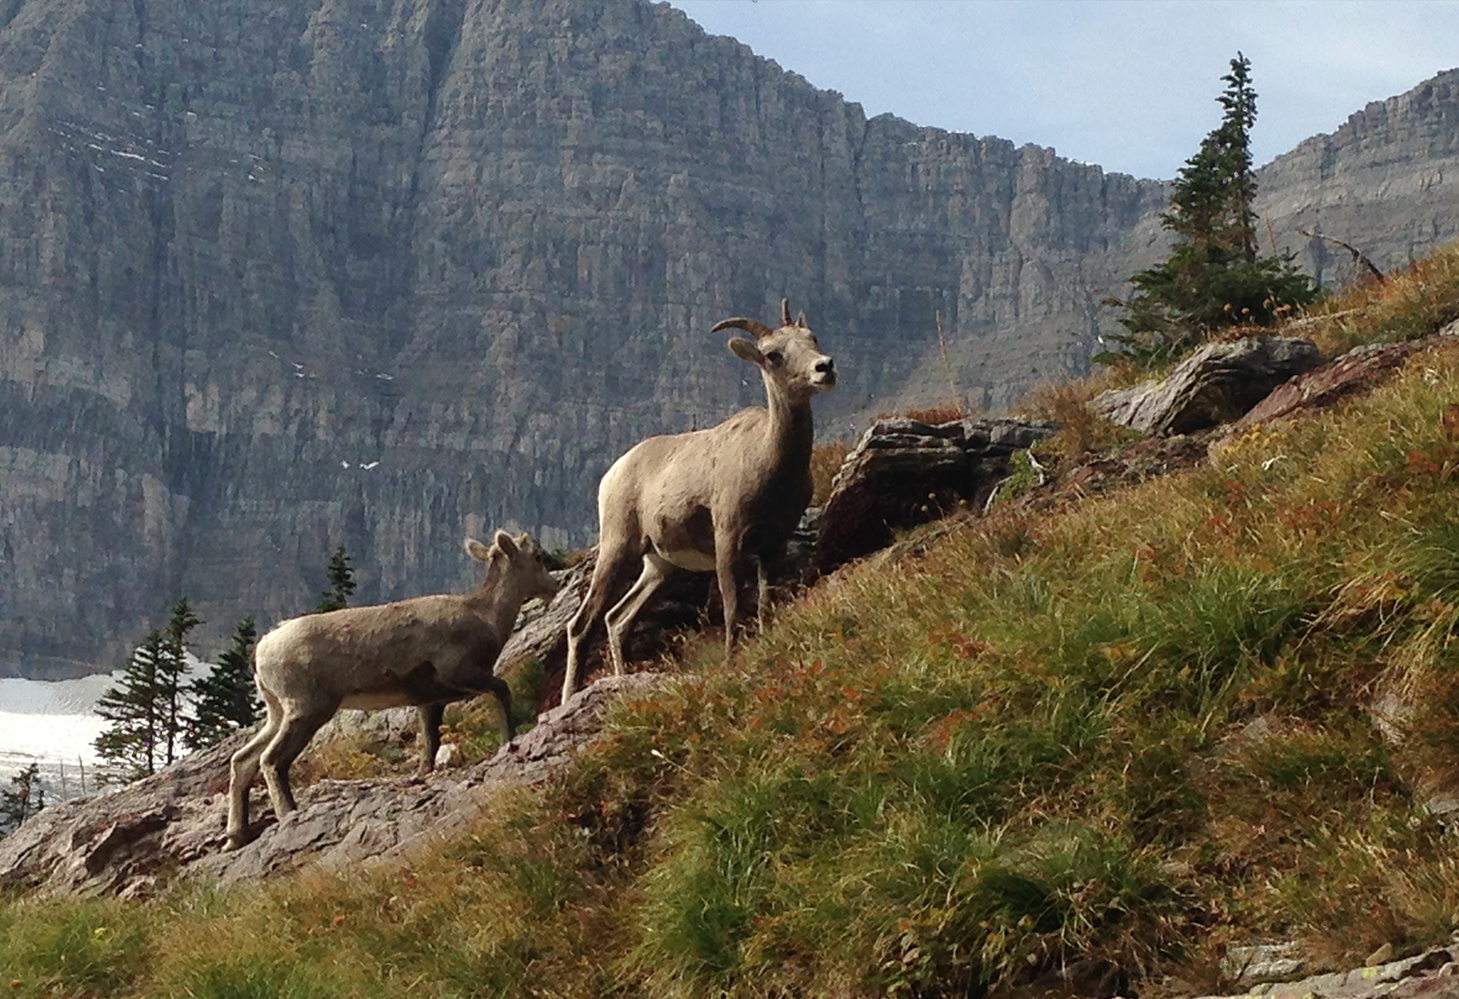 A bighorn ewe and lamb graze along a meadow in the alpine of the Rocky Mountains